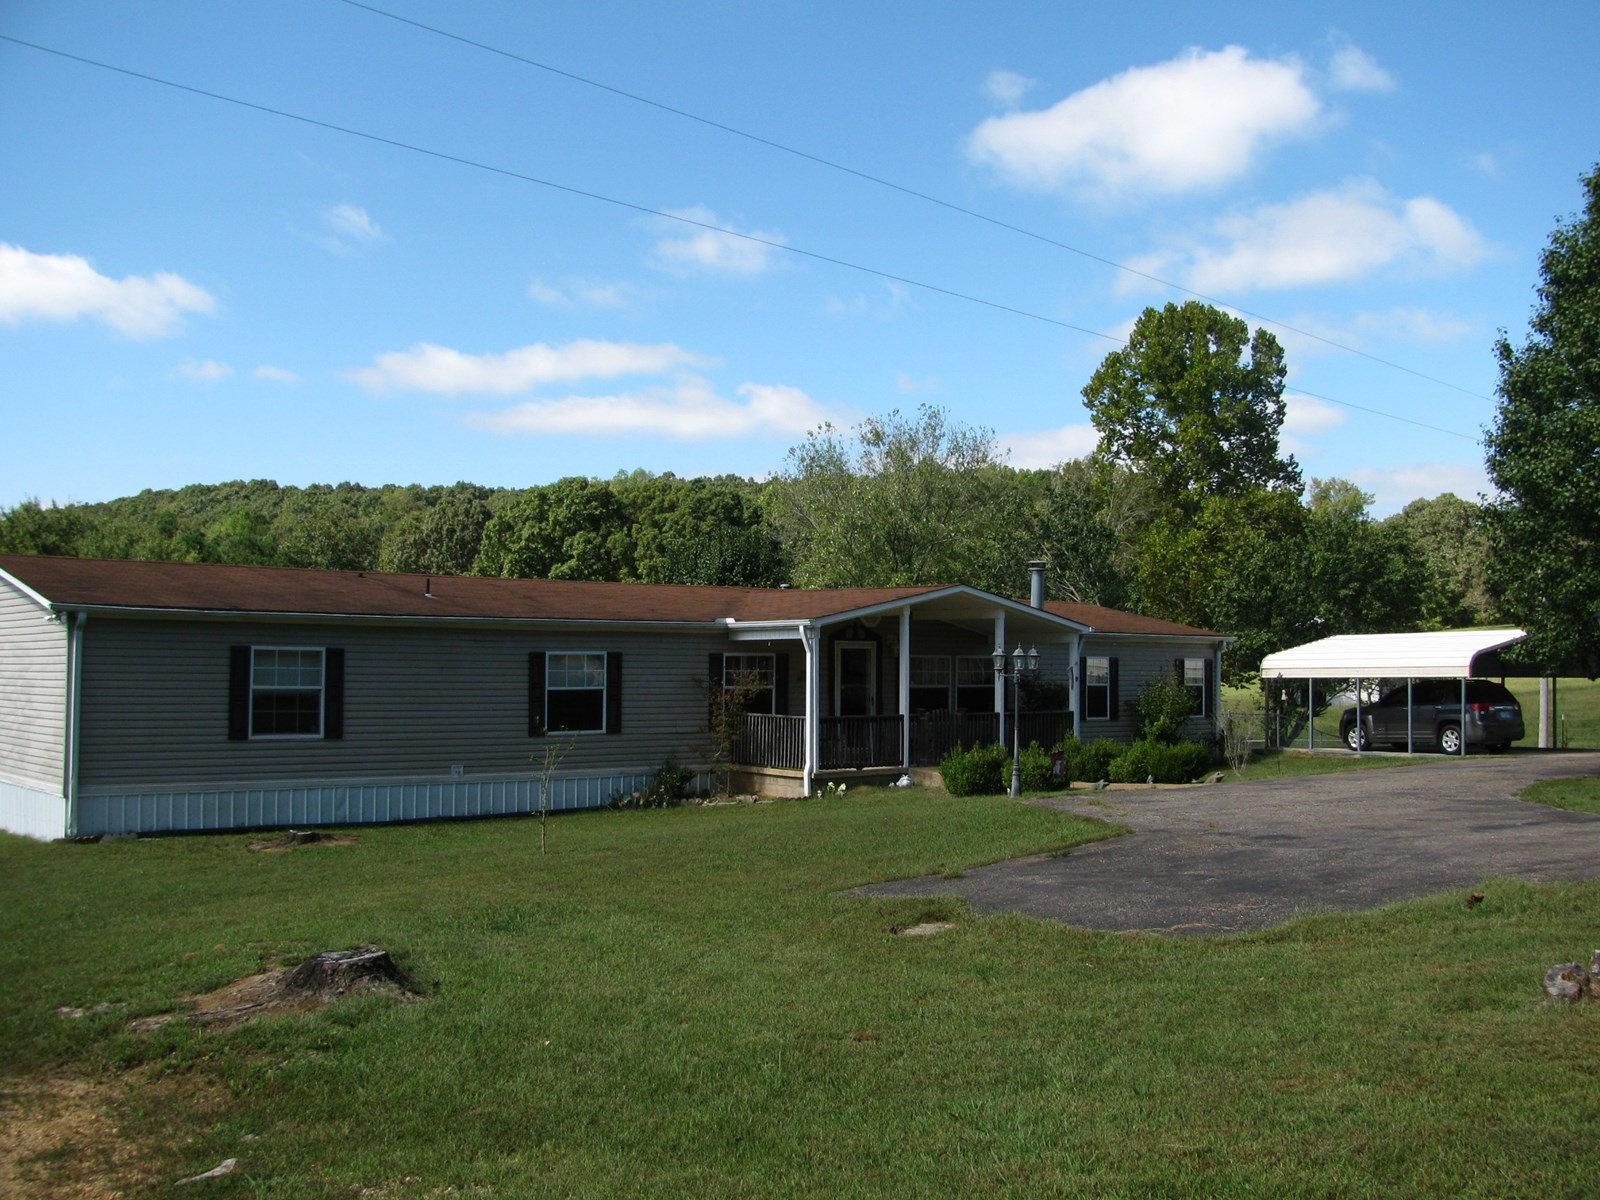 COUNTRY HOME FOR SALE IN TN, STORM SHELTER, POOL, WELL, ACRE